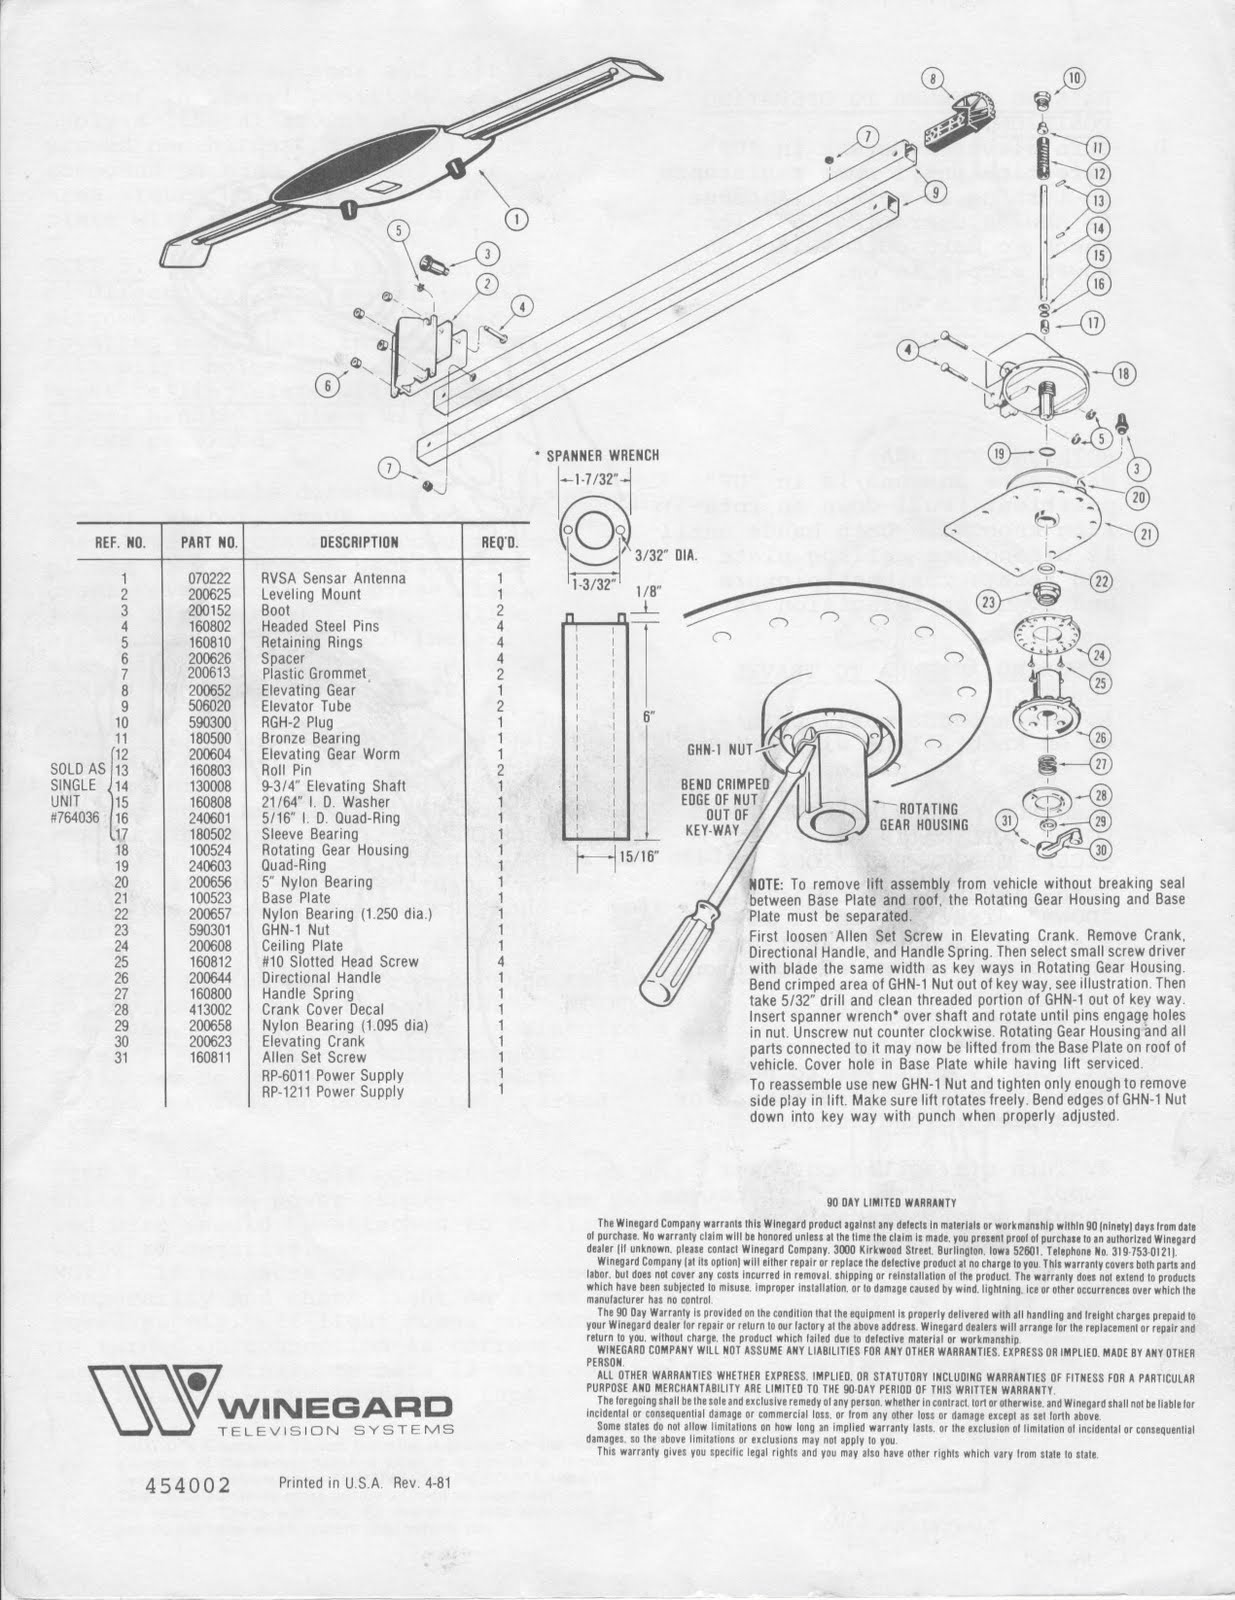 shurflo rv water pump wiring diagram how to wire a gfci outlet flojet